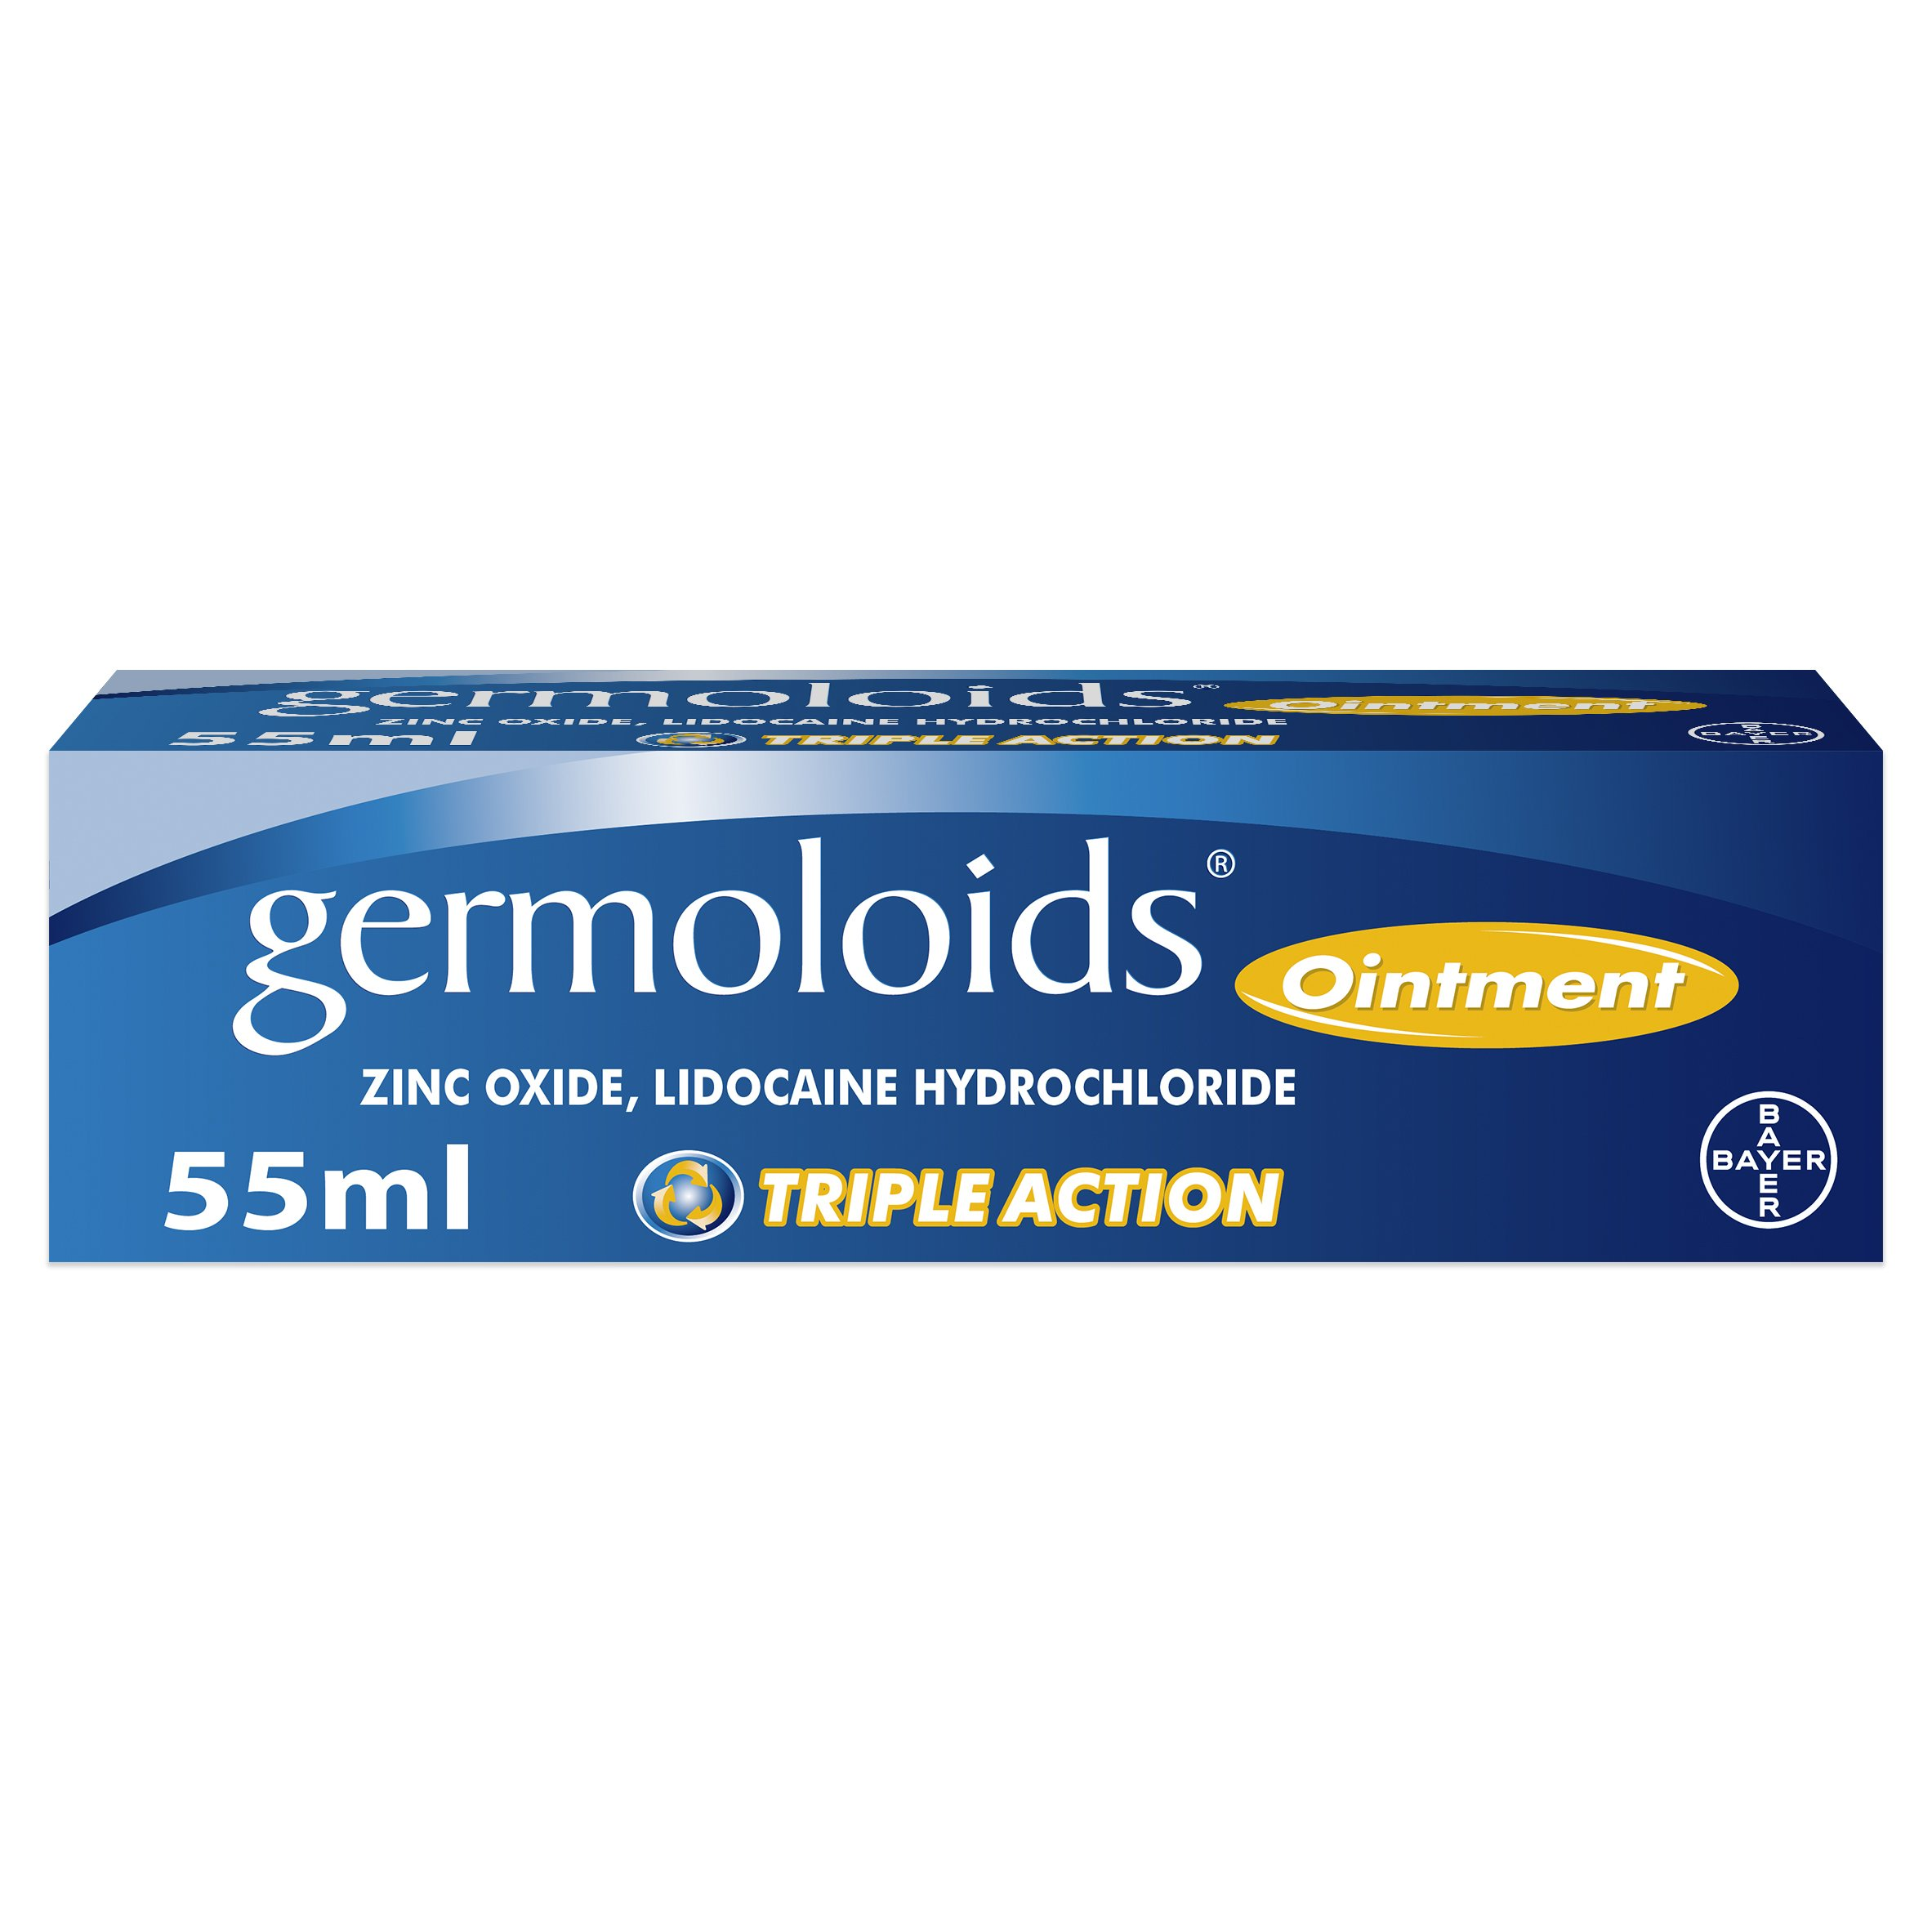 Germoloids Pile Relief Ointment To Sooth & Reduce Painful Piles Swelling 55ml